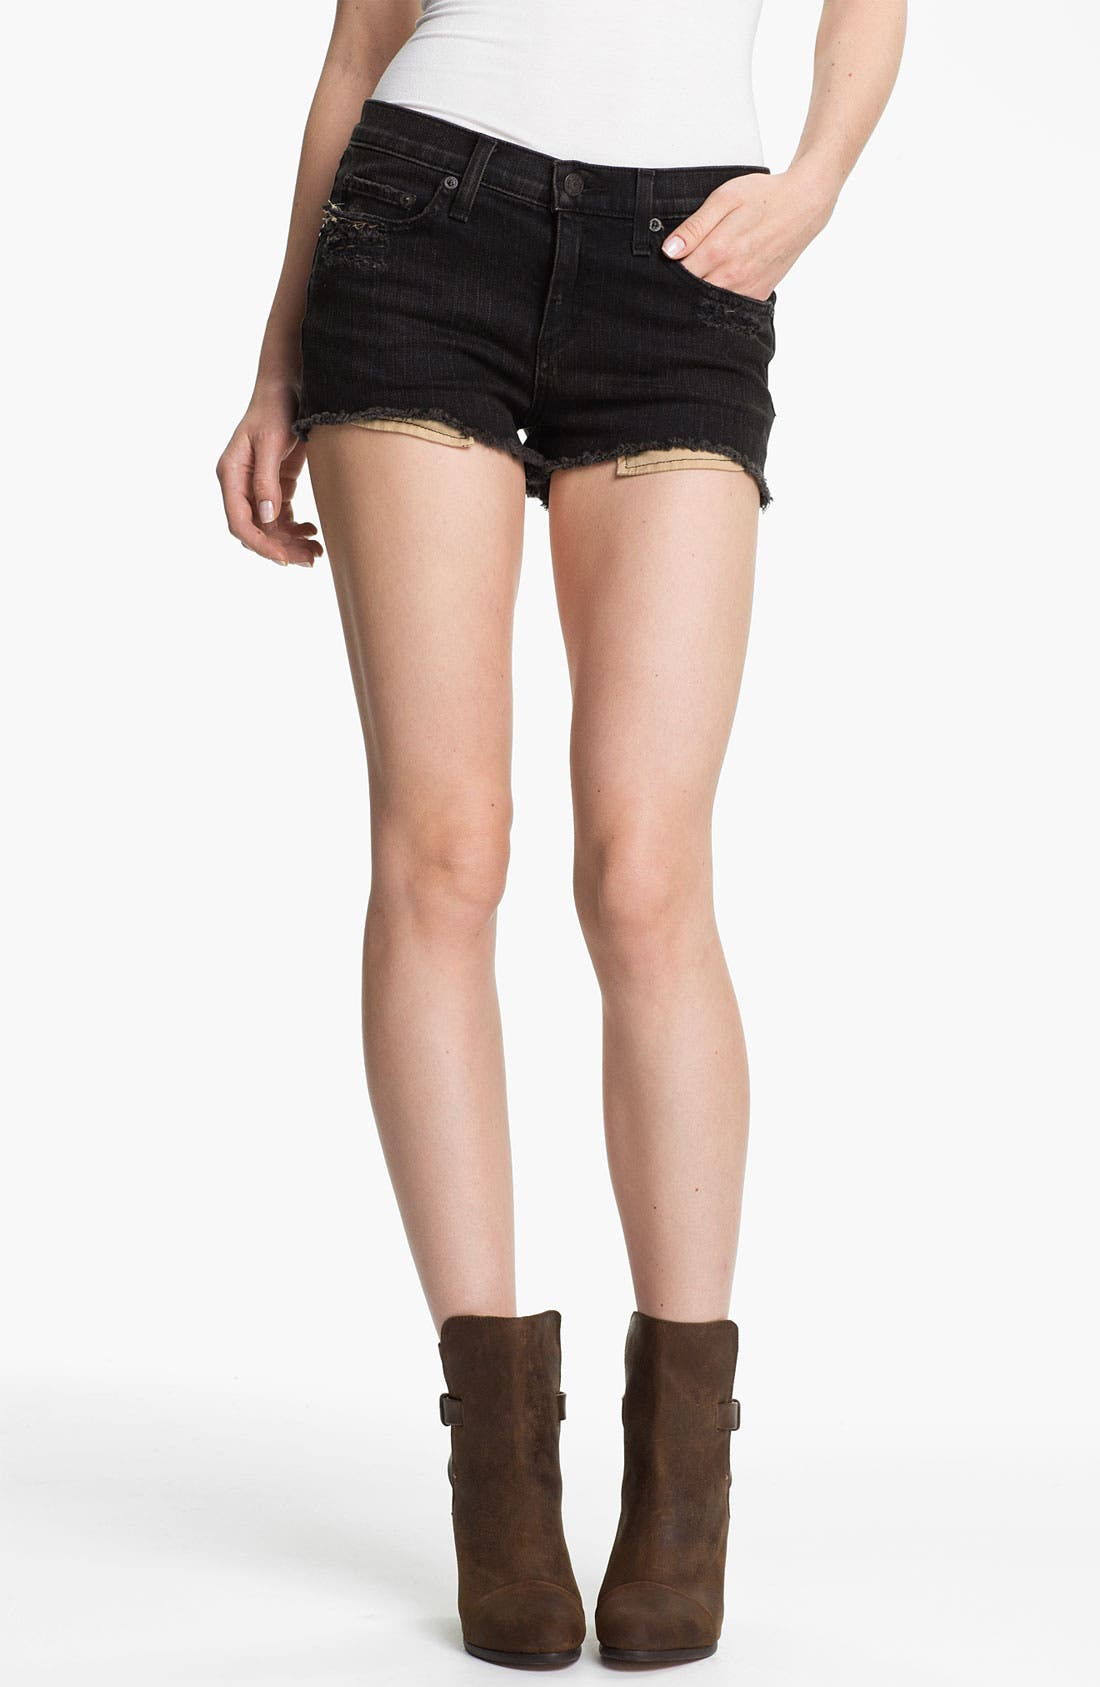 Alternate Image 1 Selected - rag & bone 'Mila' Cutoff Denim Shorts